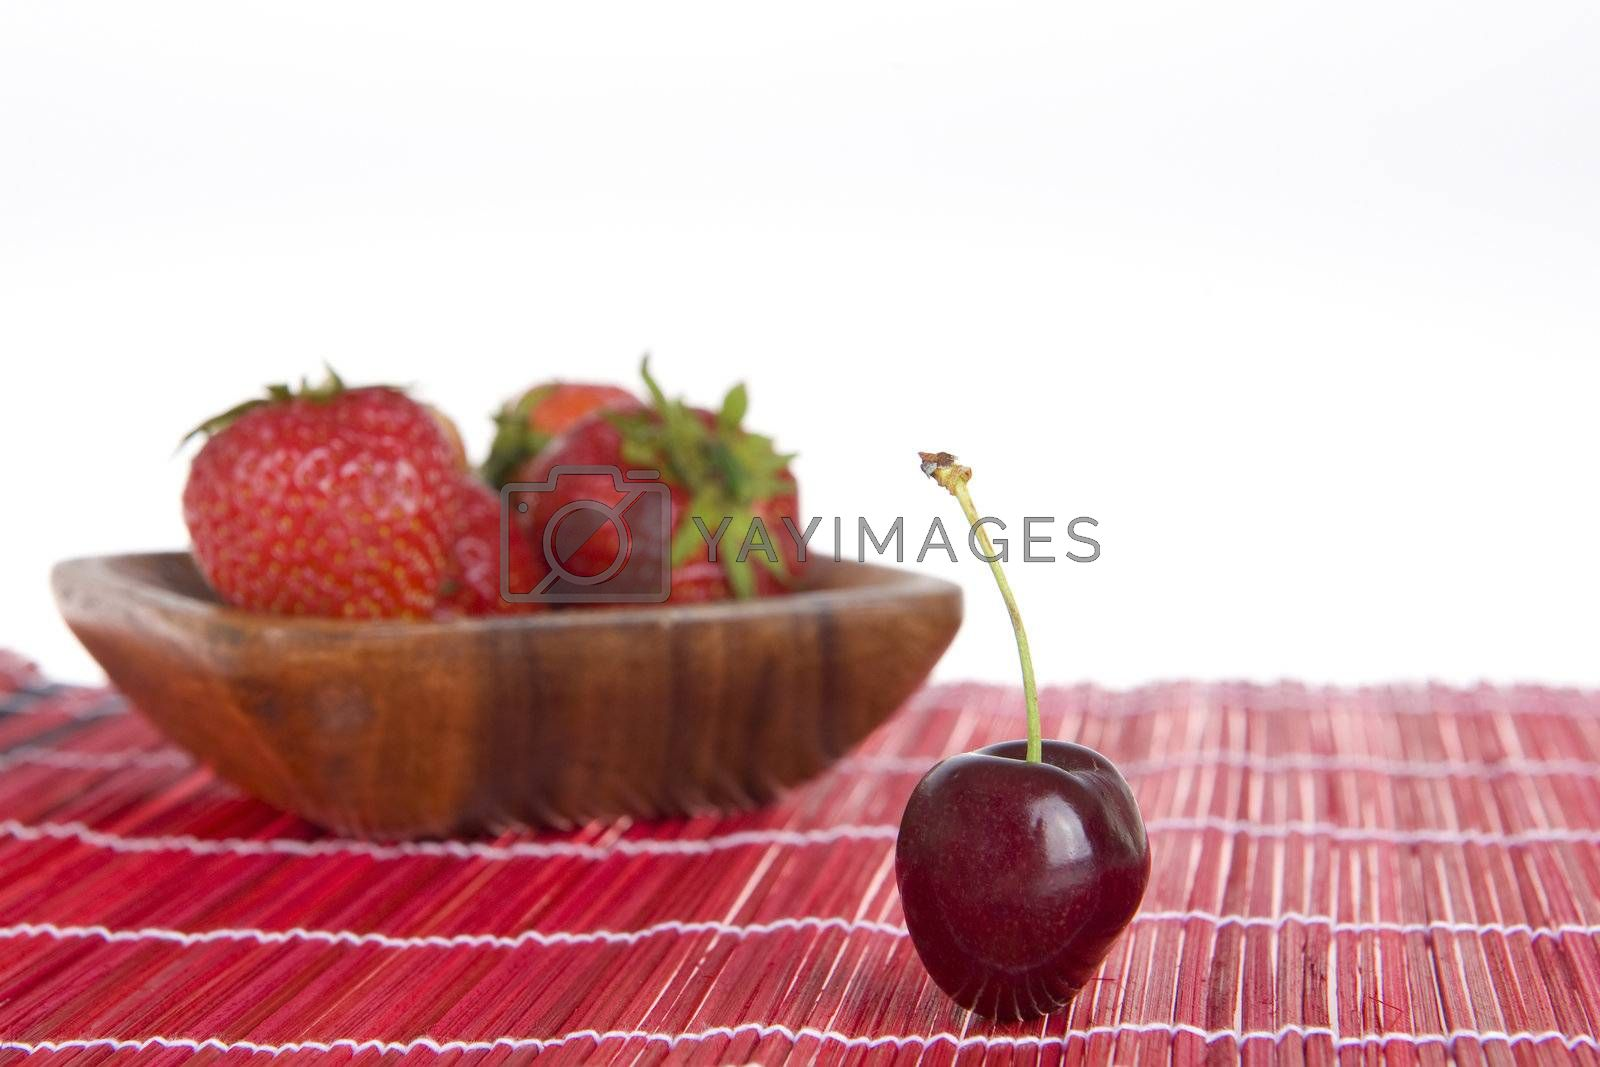 Royalty free image of cherries by Gabees